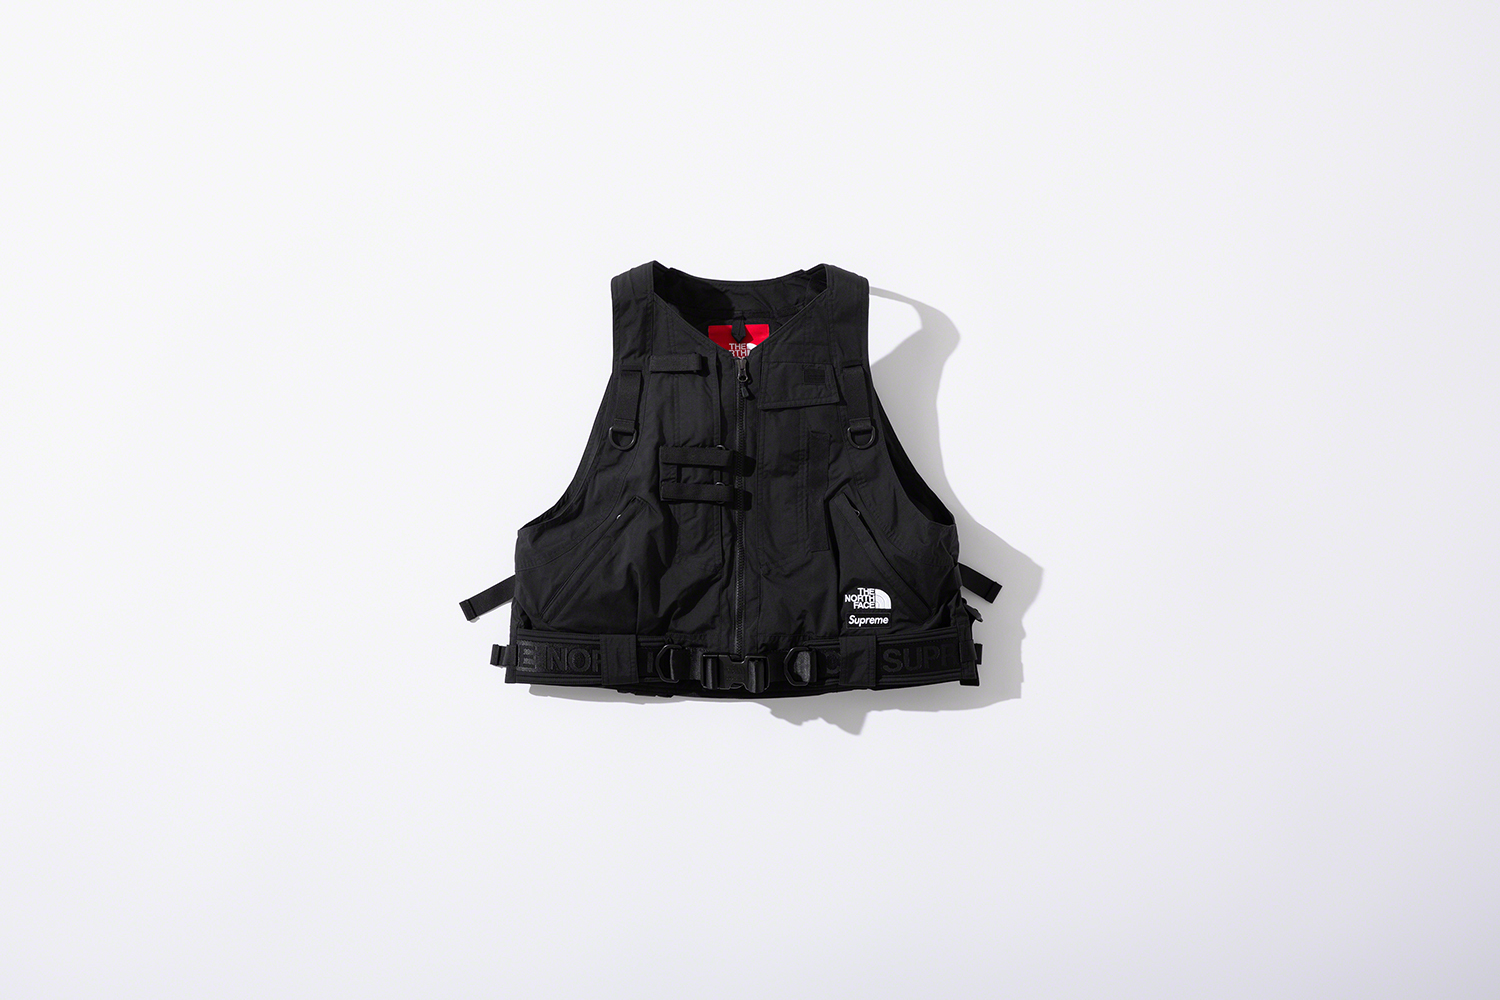 supreme-the-north-face-rtg-series-collaboration-20ss-release-20200314-week3